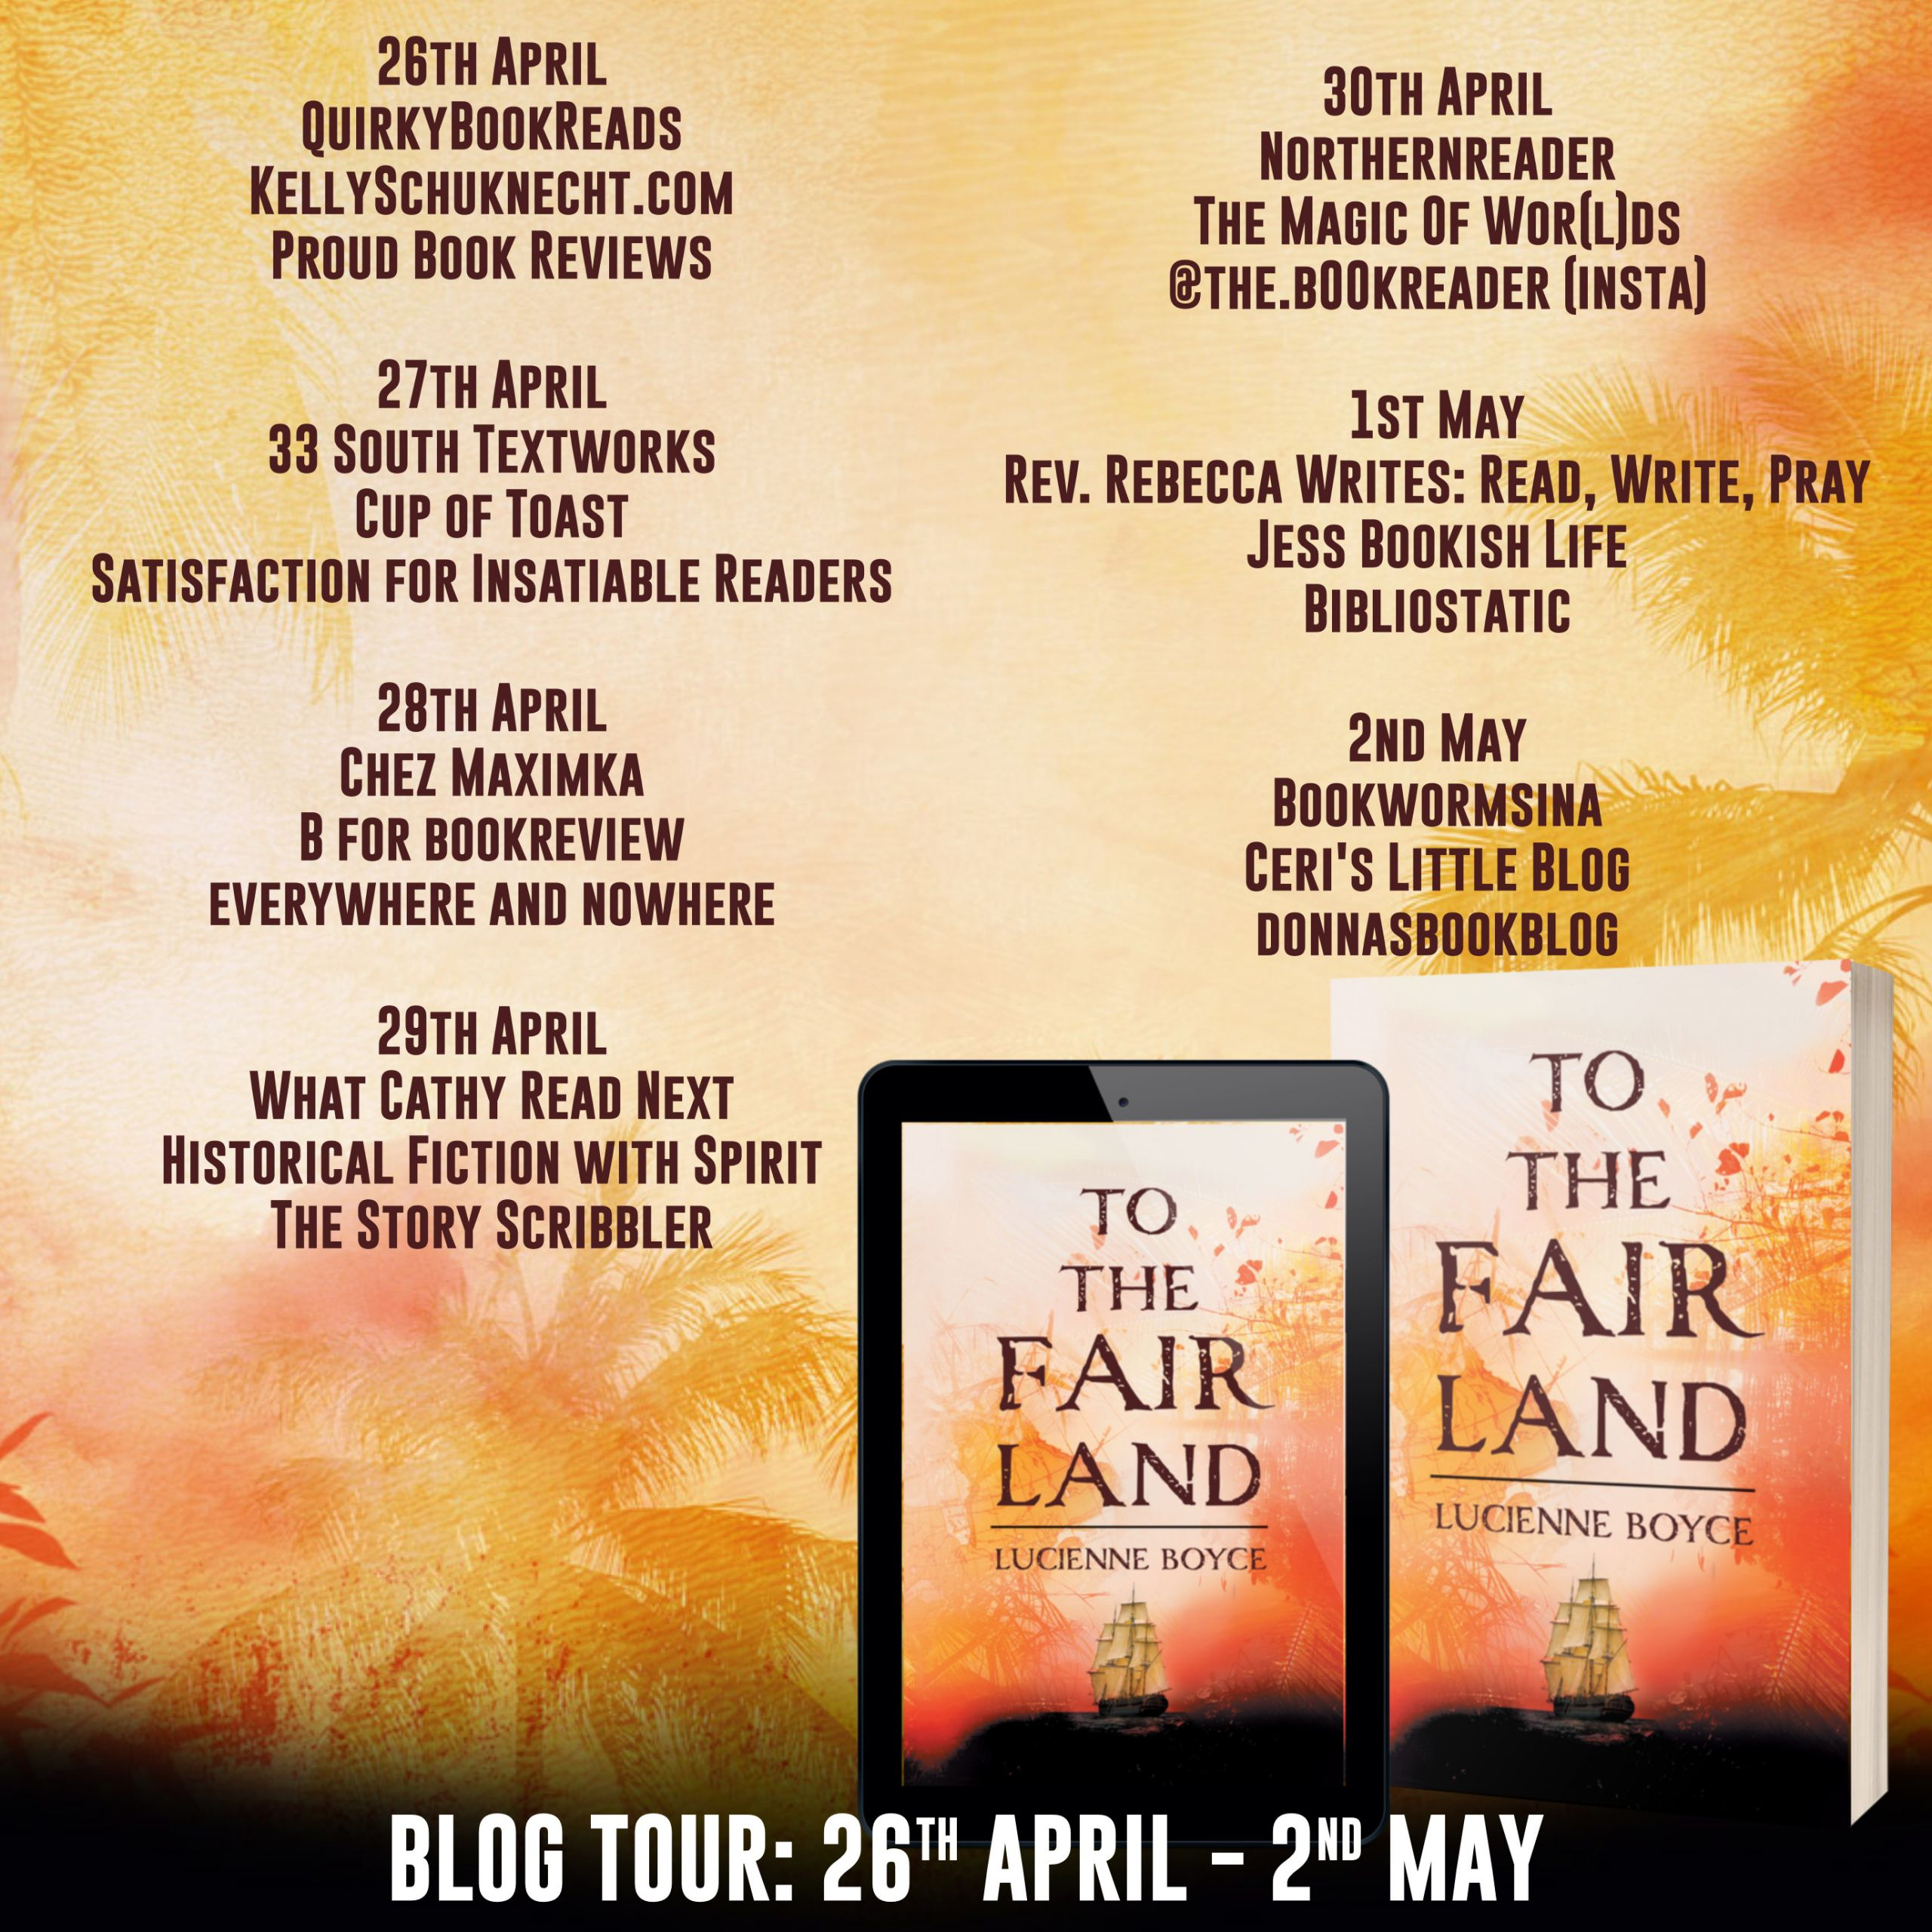 Blog Tour Stops for To The Fair Land